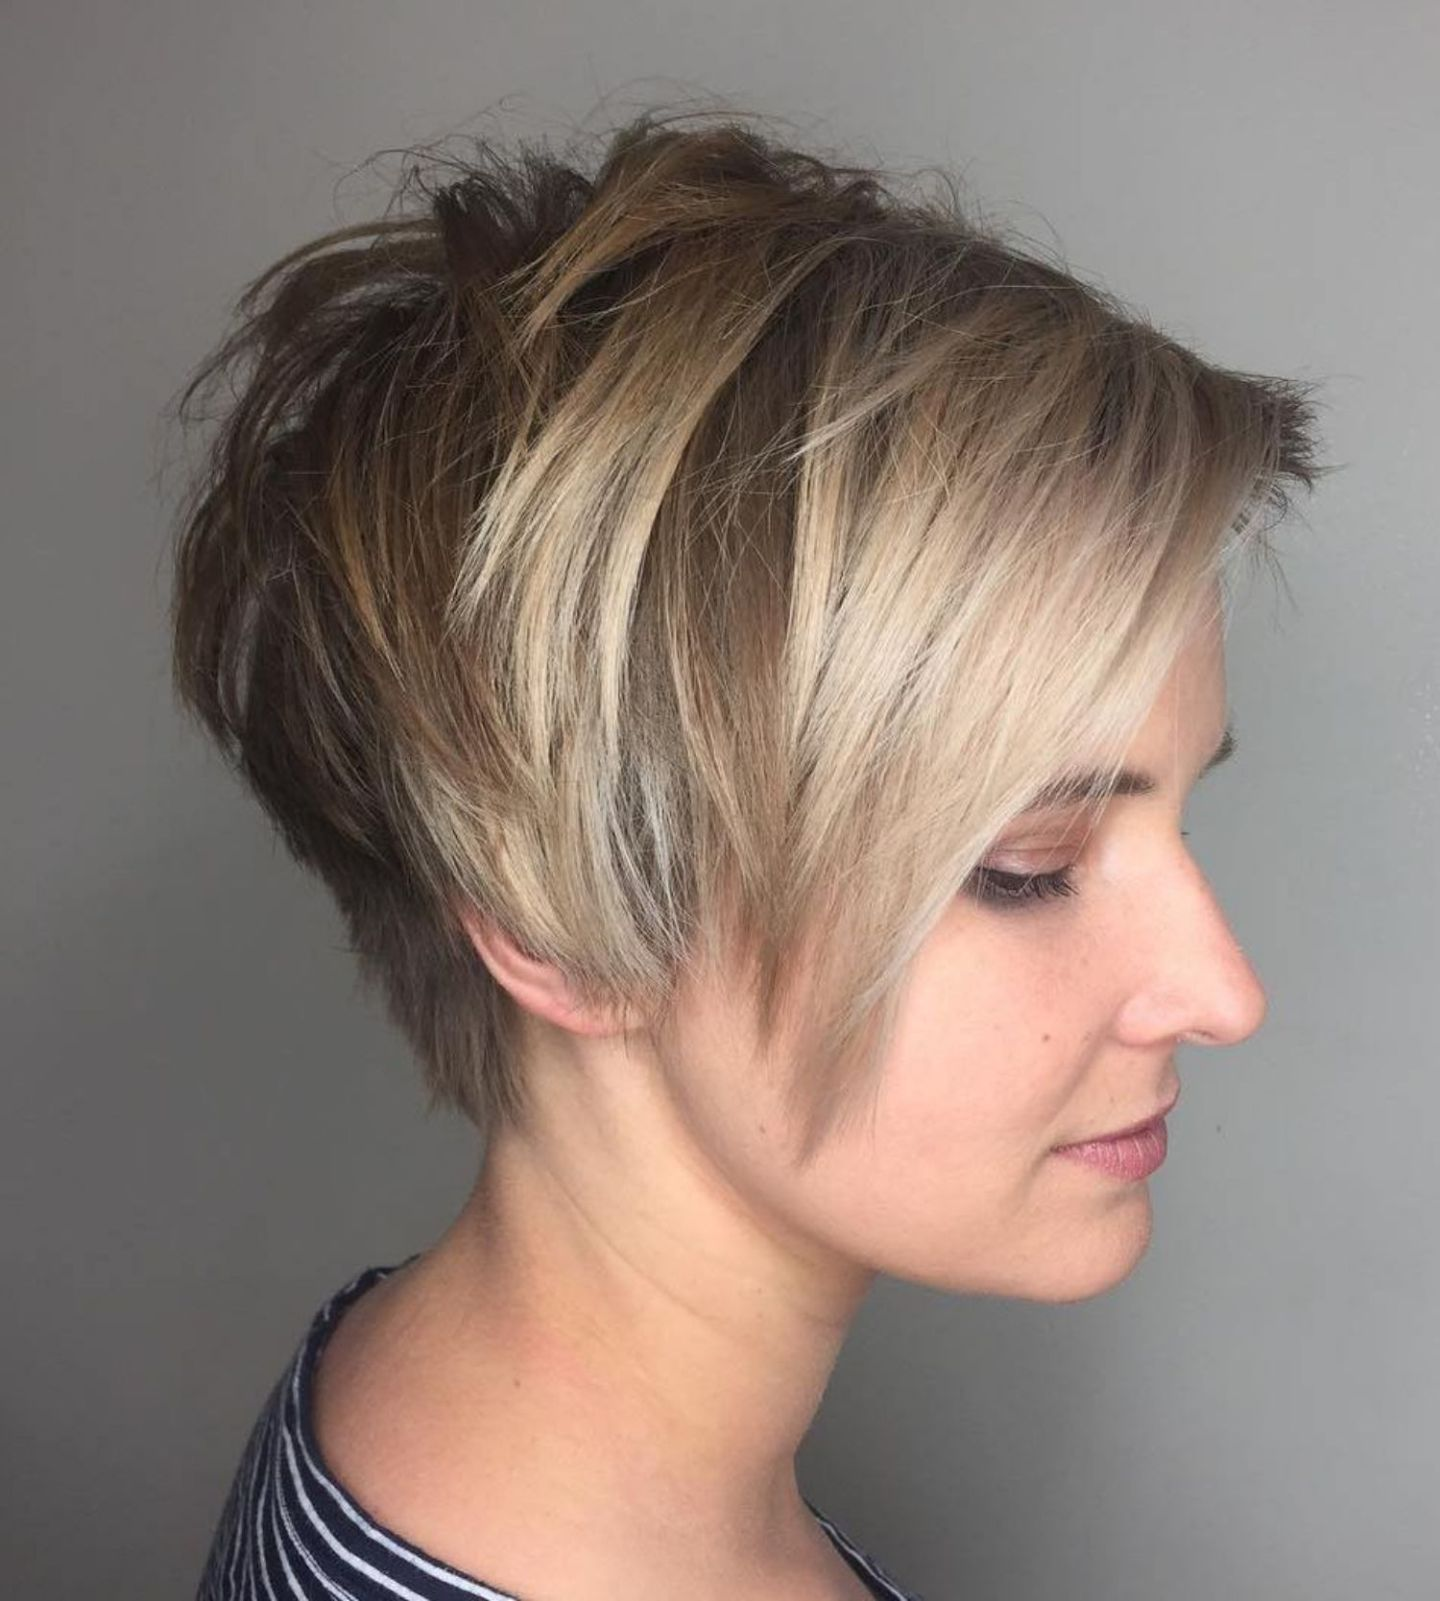 Elongated Choppy Pixie With Tapered Back Short Hair With Layers Short Layered Haircuts Short Hair Styles